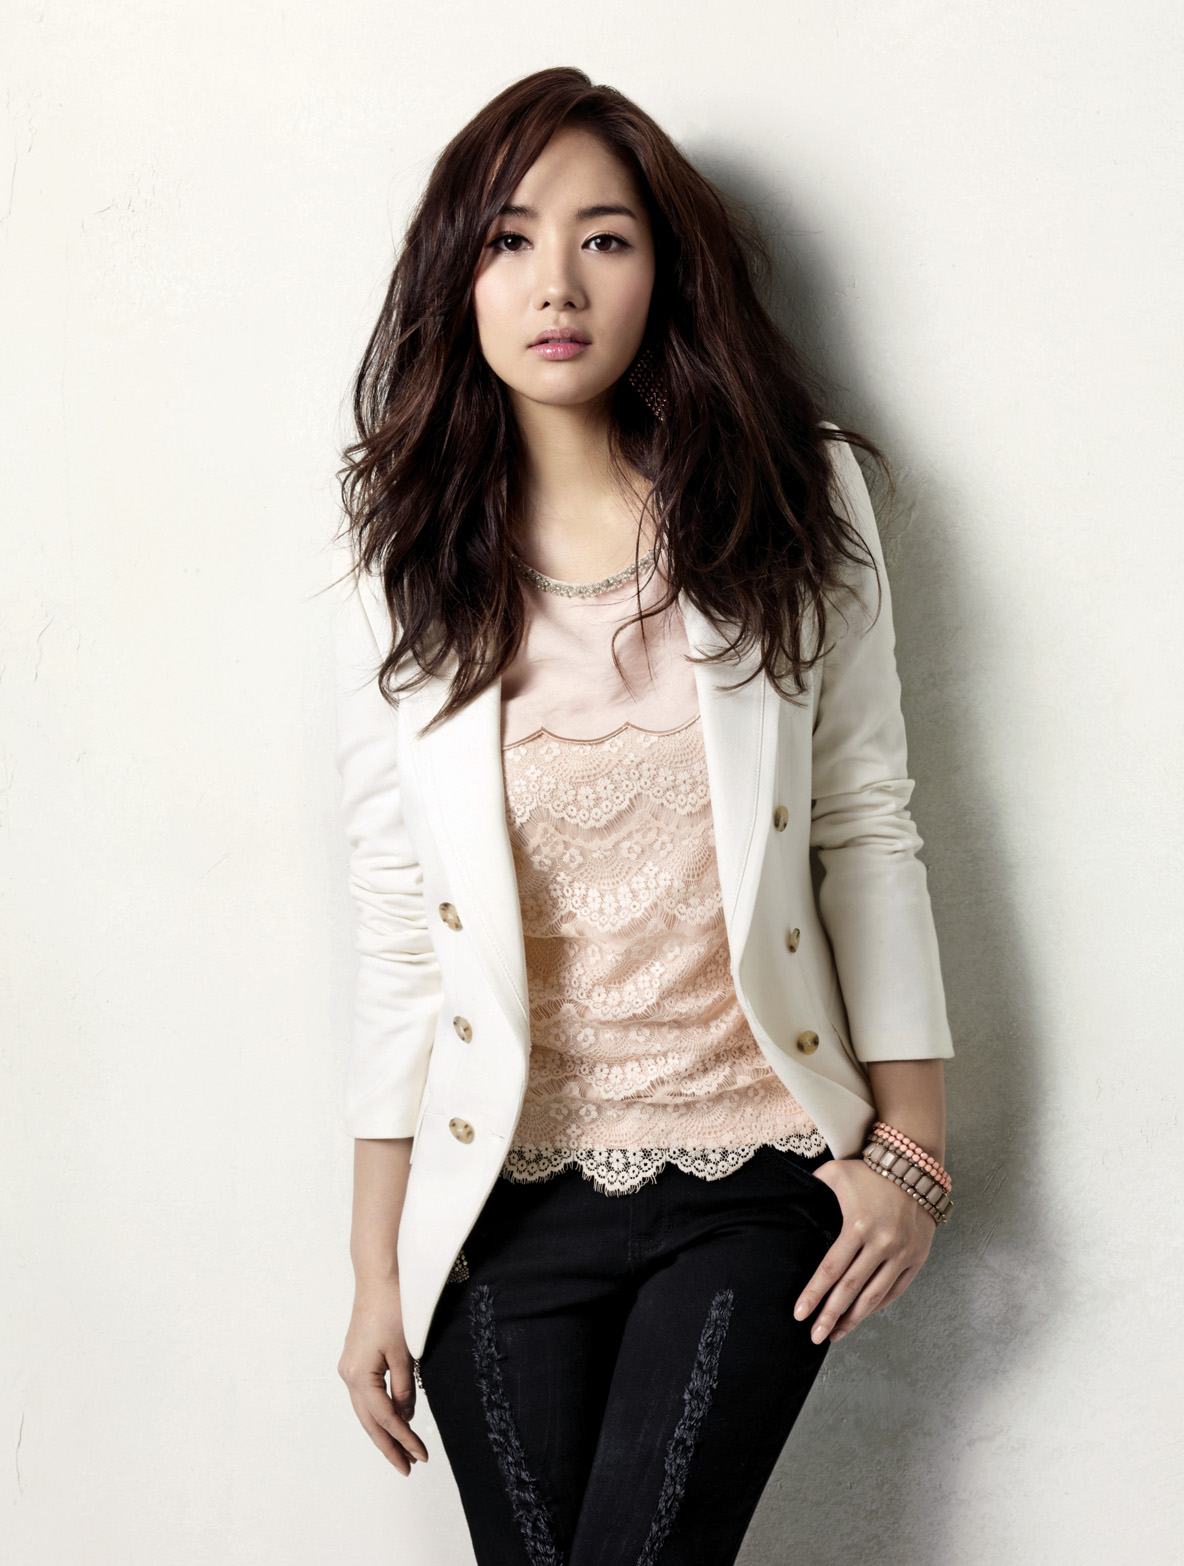 Park Min Young - HD Wallpapers